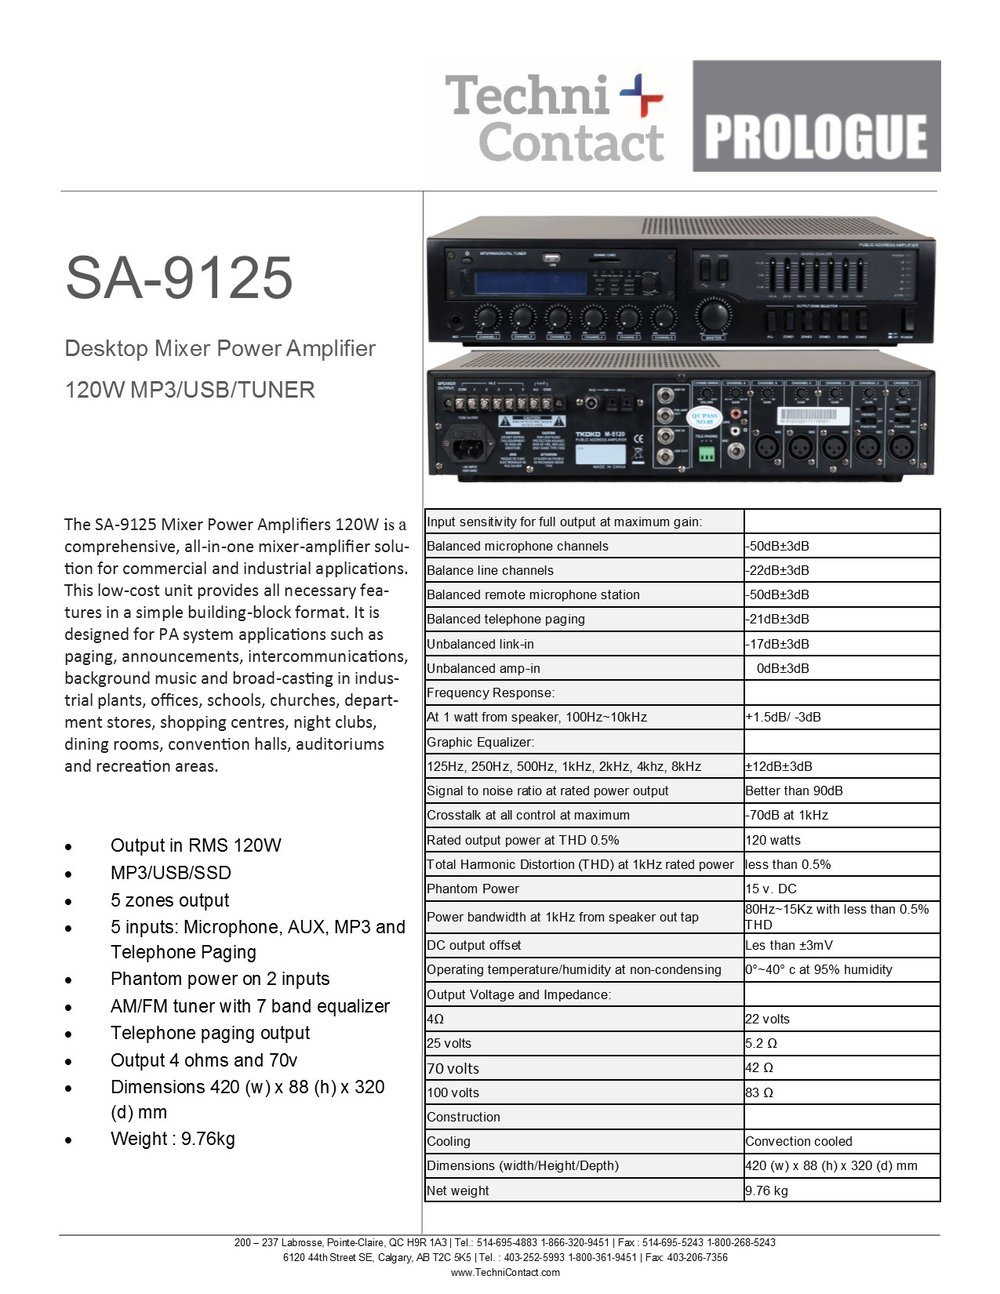 Prologue_SA-9125_SPECS.jpg